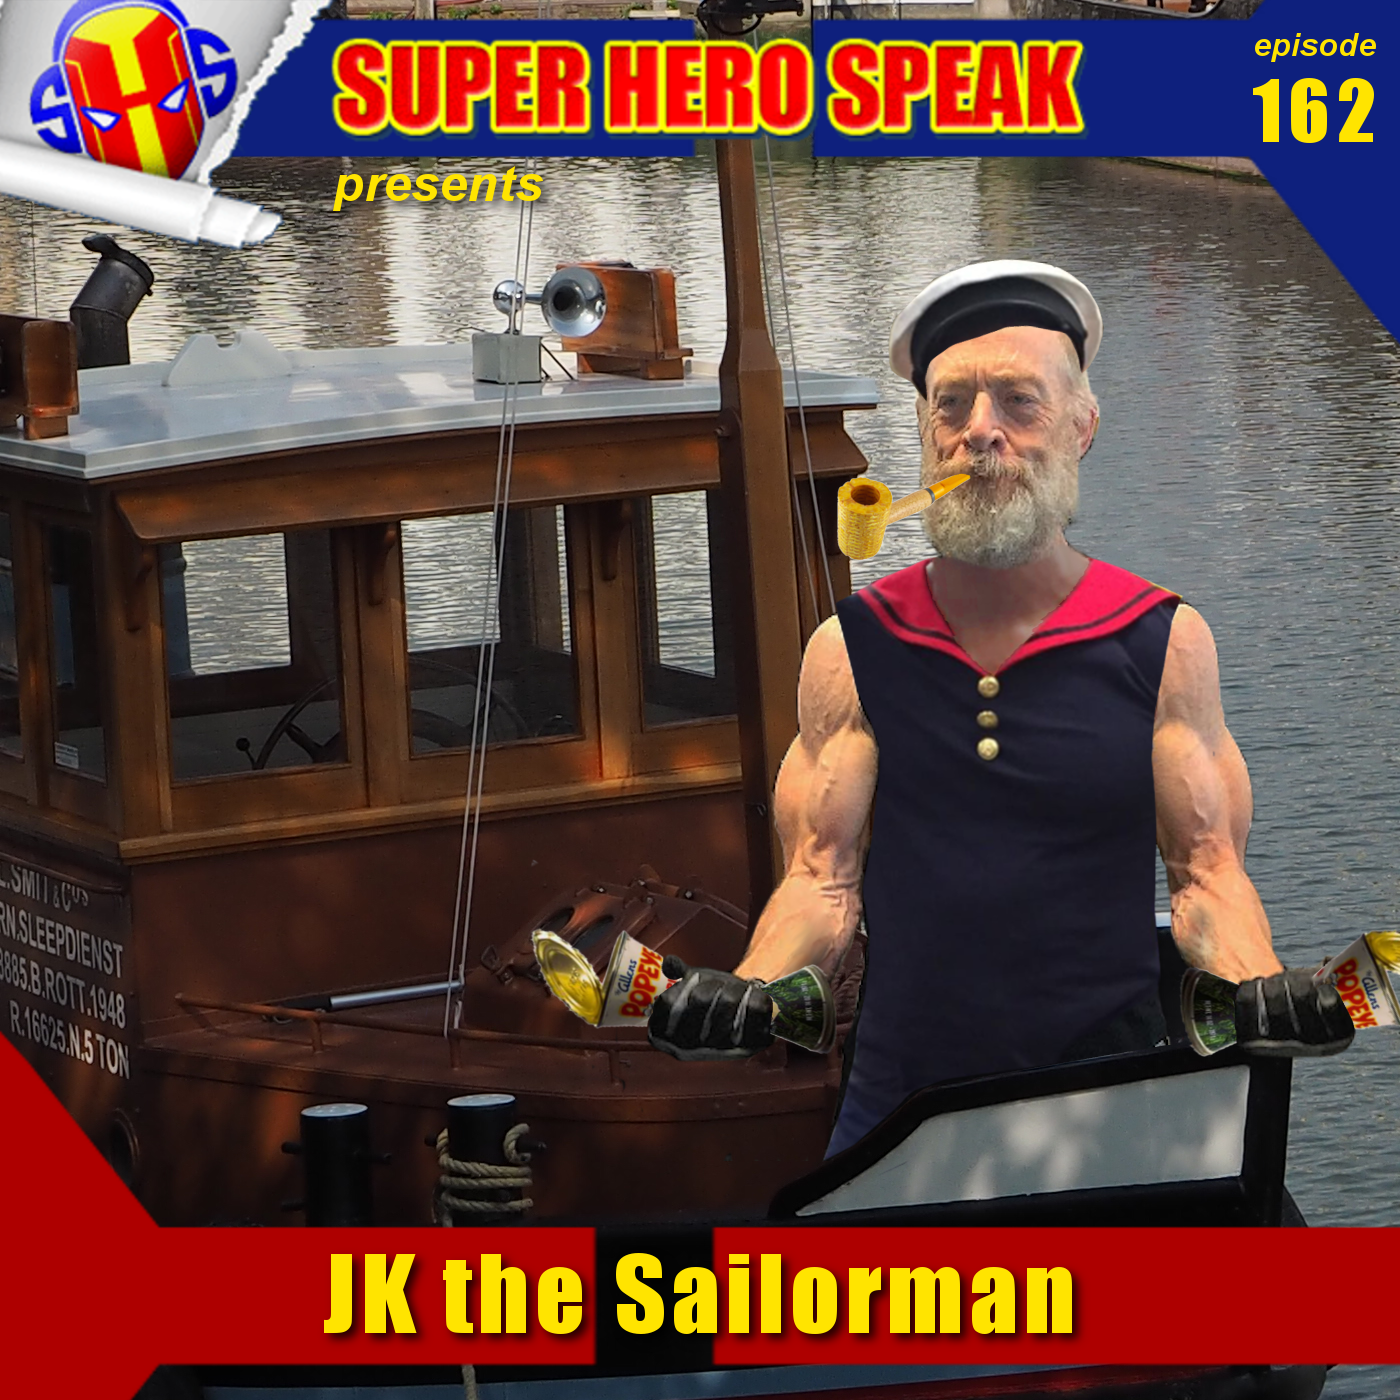 #162: JK the Sailorman